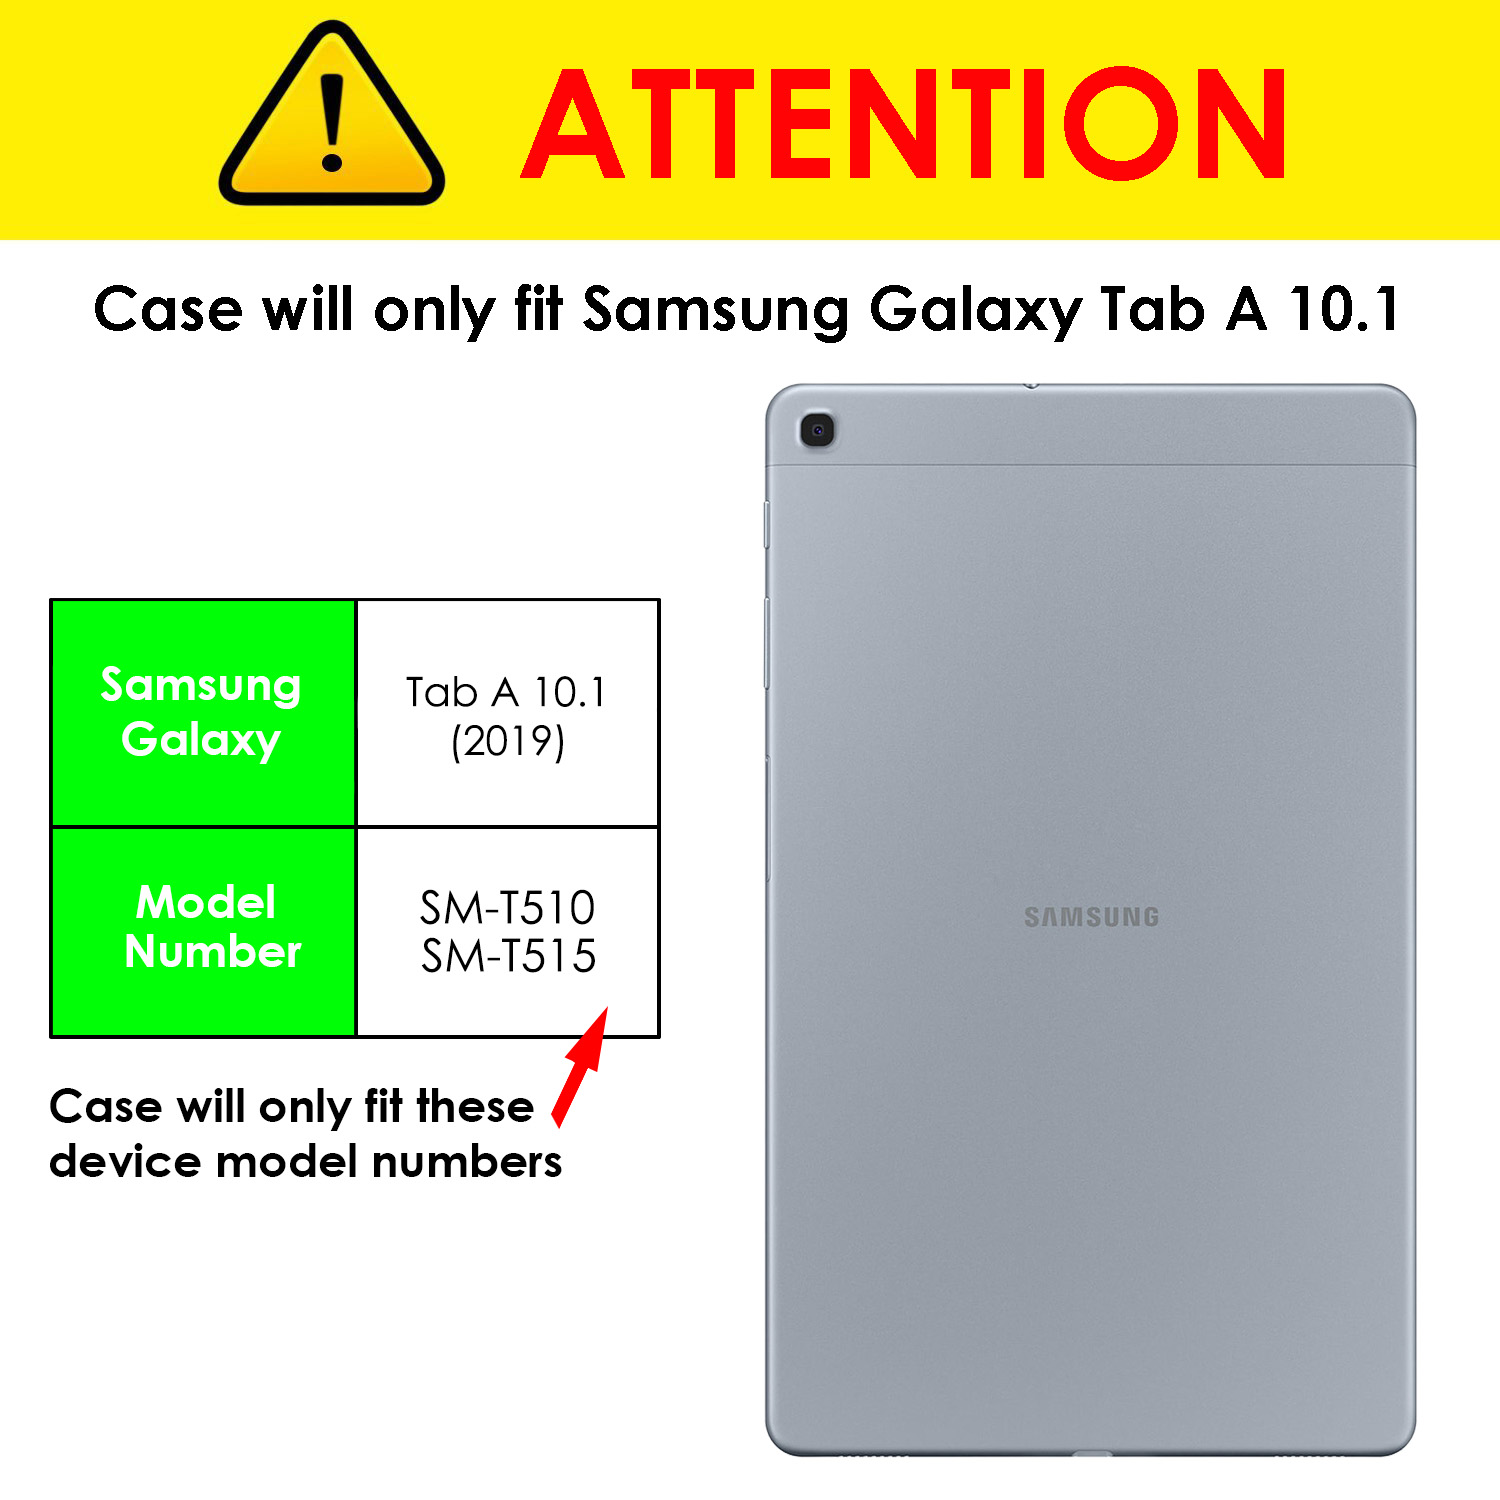 miniature 36 - Samsung Galaxy Tab A 10.1 2019 Étui Magnétique Protection & Support + Stylet